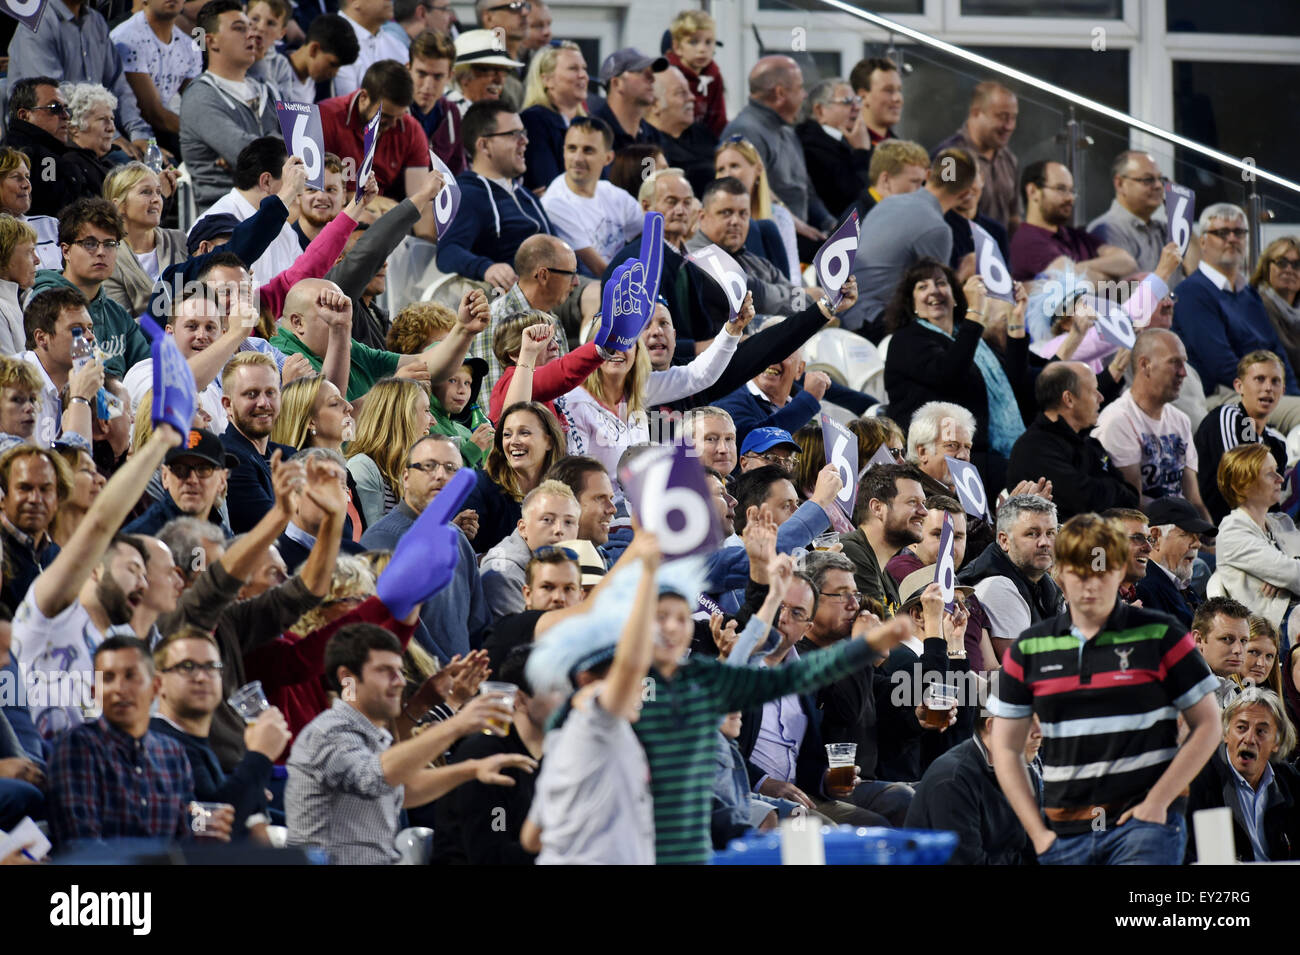 Hove UK Friday 17th July 2015 - A capacity crwod watching during the NatWest T20 blast cricket match at Hove County Stock Photo